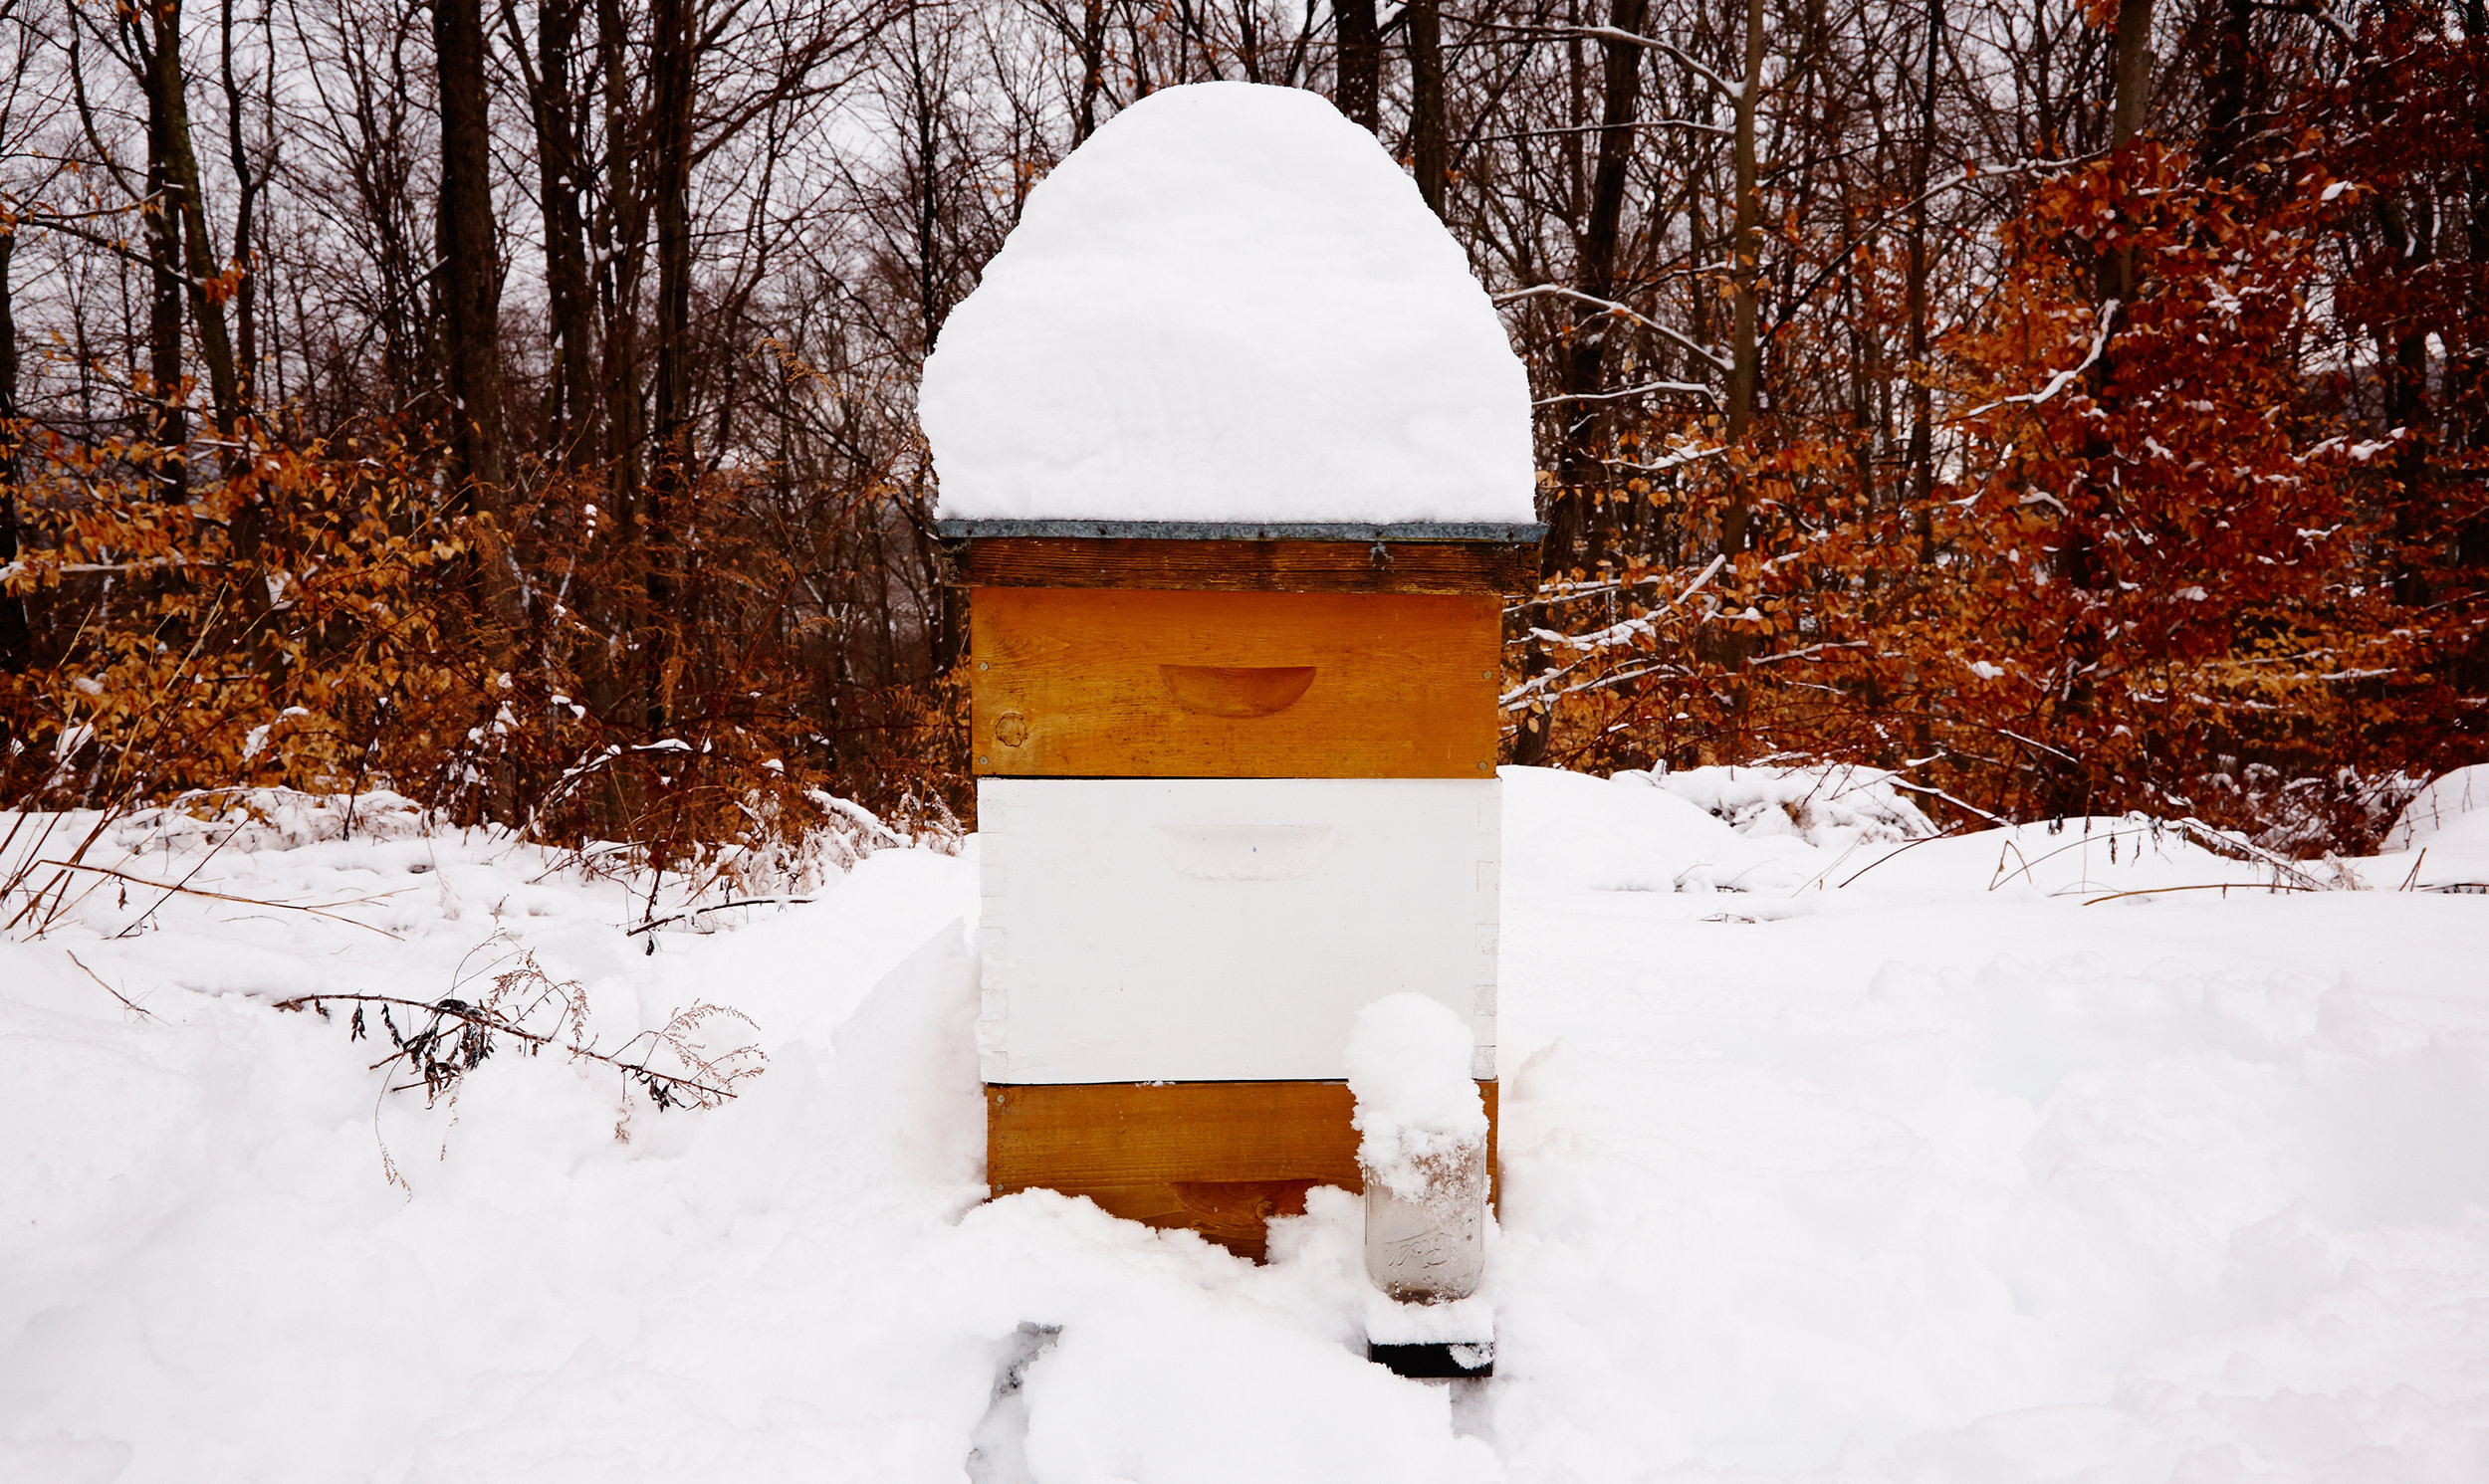 BEE-HIVE-IN-SNOW-WILTSHIRE-FARM-©-JONATHAN-R.-BECKERMAN-PHOTOGRAPHY.jpg